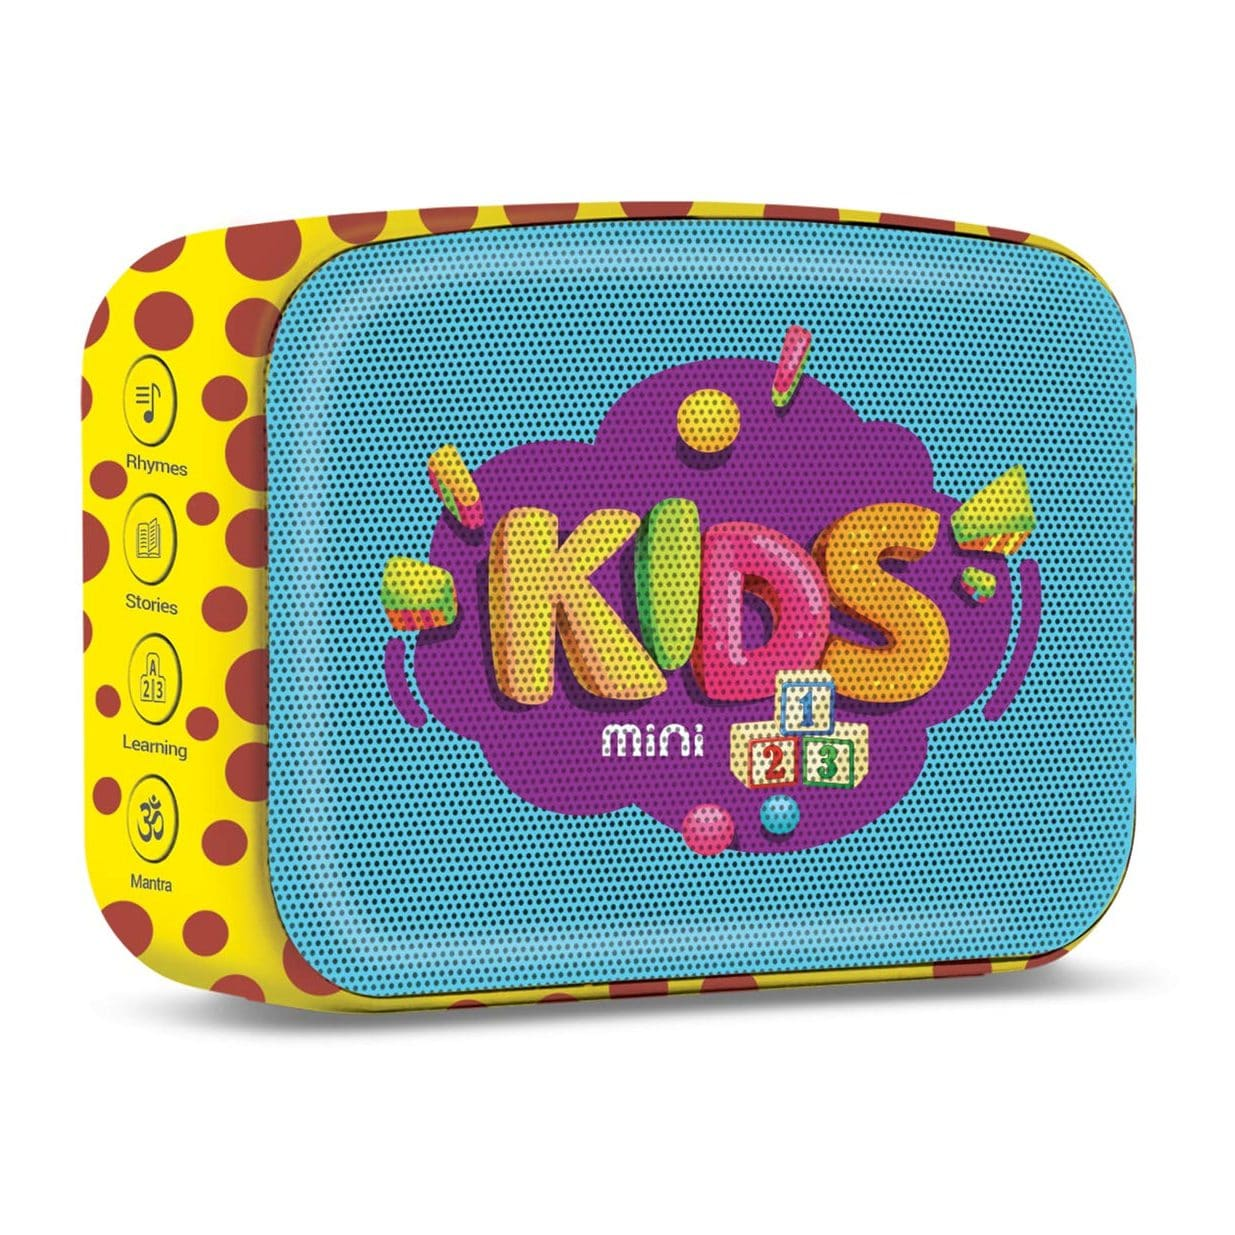 Saregama Carvaan mini kids review